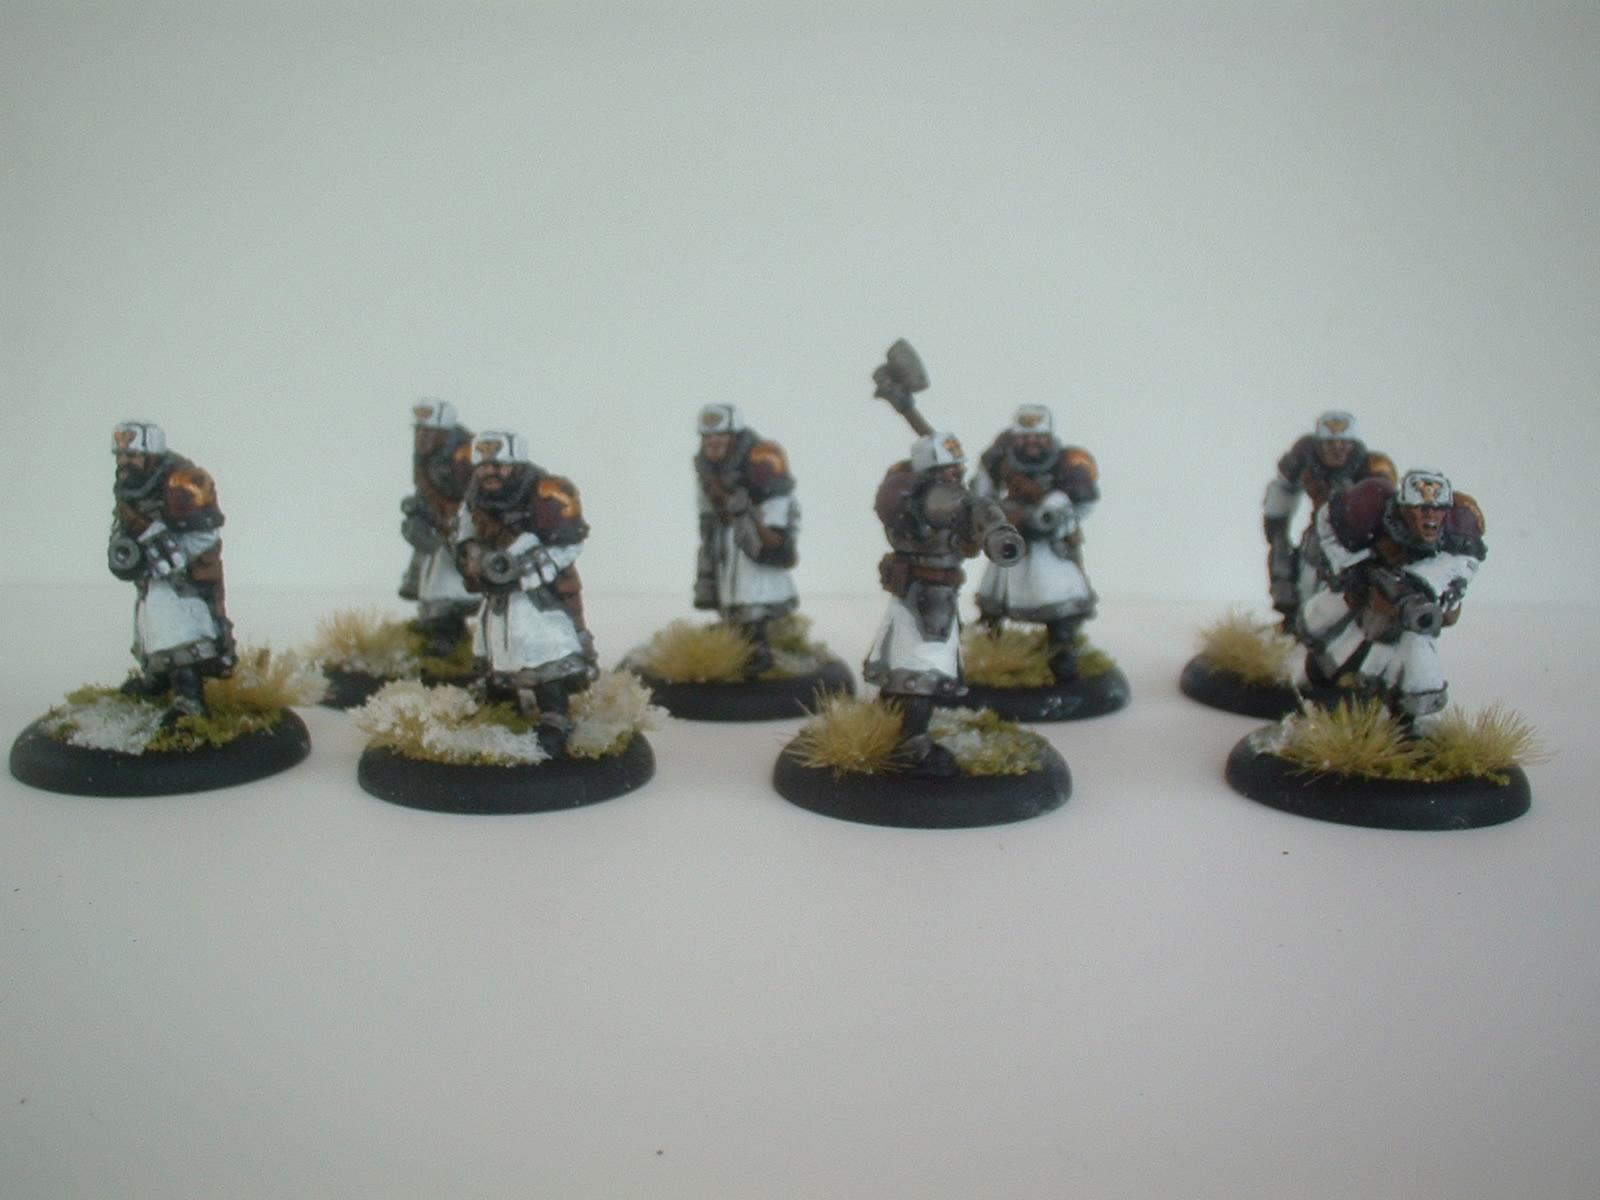 8 Winter Guard. Need another 2 to complete the unit. Have the attachments to paint up once they arrive